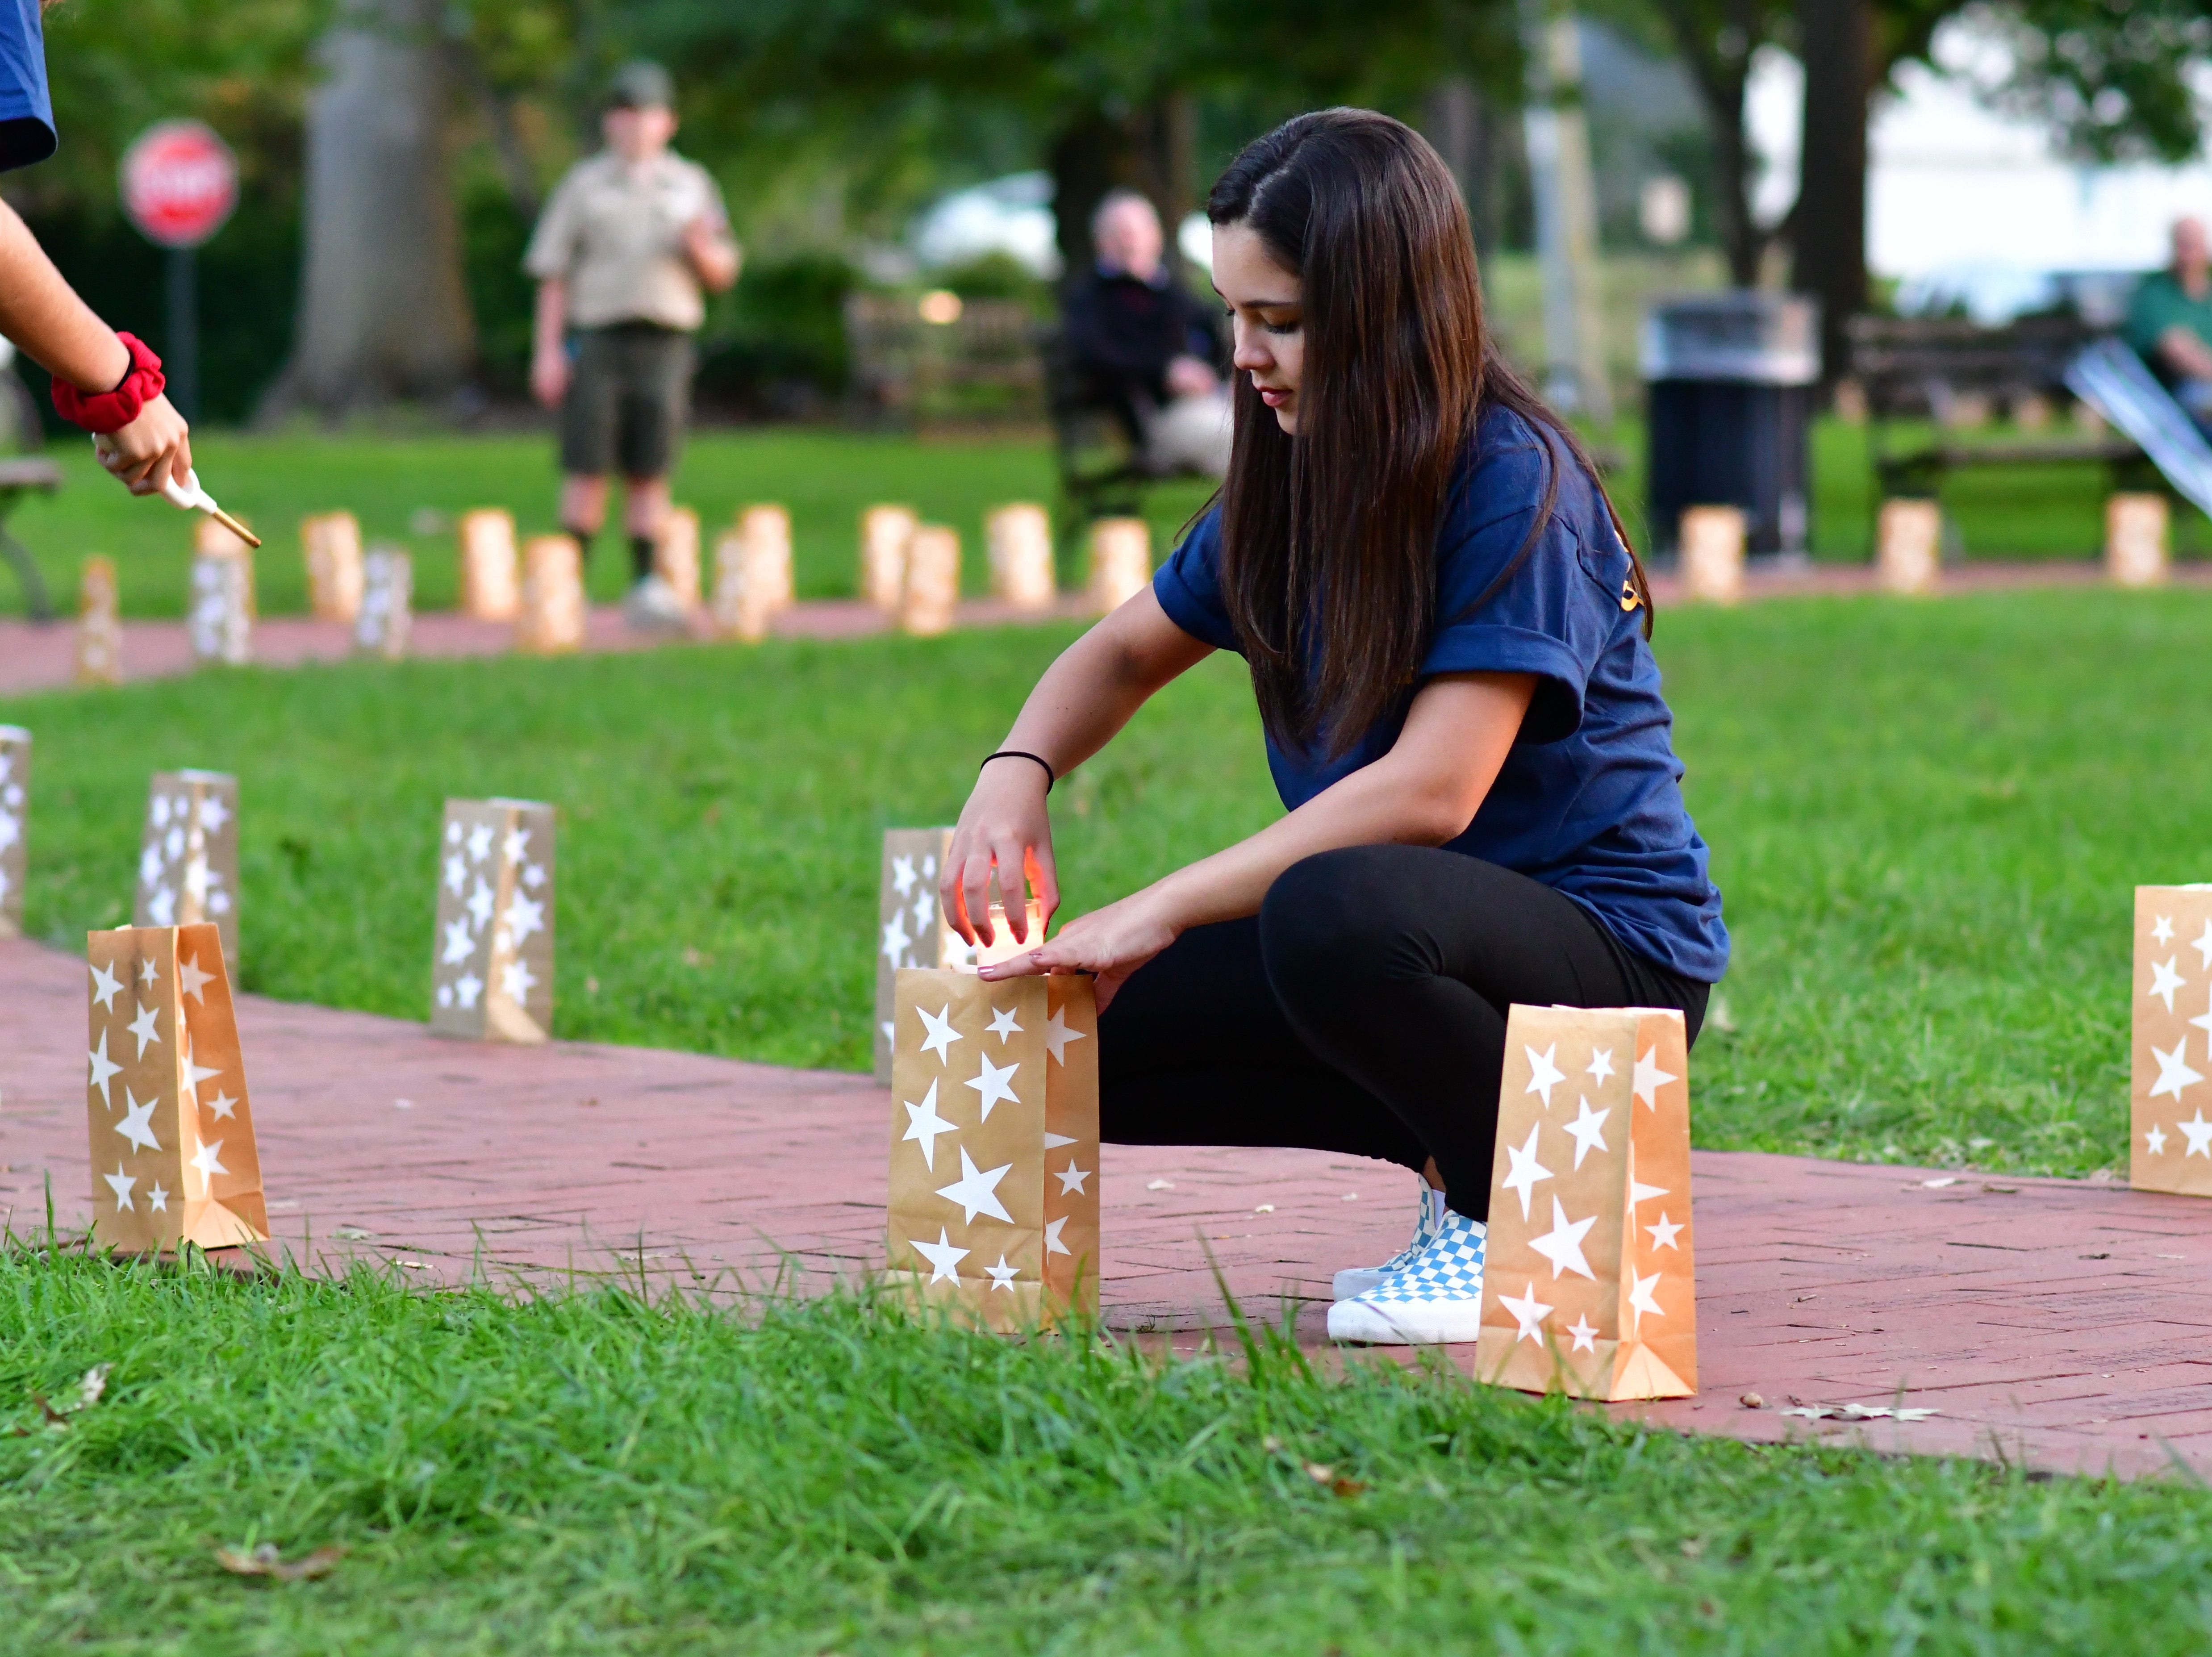 Mothers and families pay tribute to those who have lost their lives from service in the military.  At Van Neste Park in Ridgewood on Sunday evening, Sept. 30.